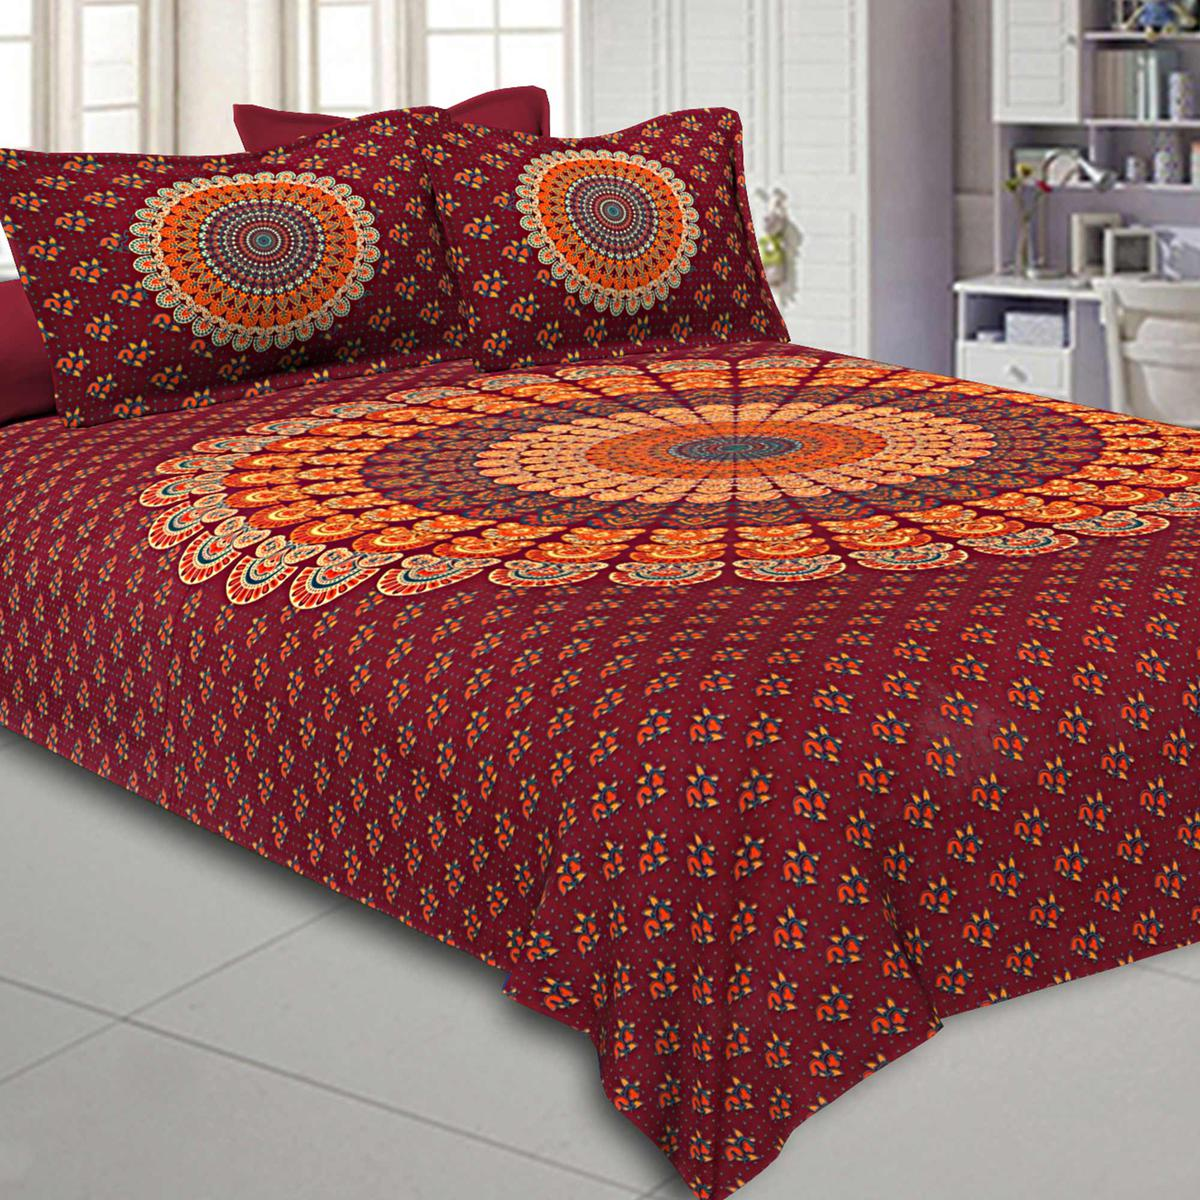 Sophisticated Maroon Colored Printed Pure Cotton Double Bedsheet With Pillow Cover Set